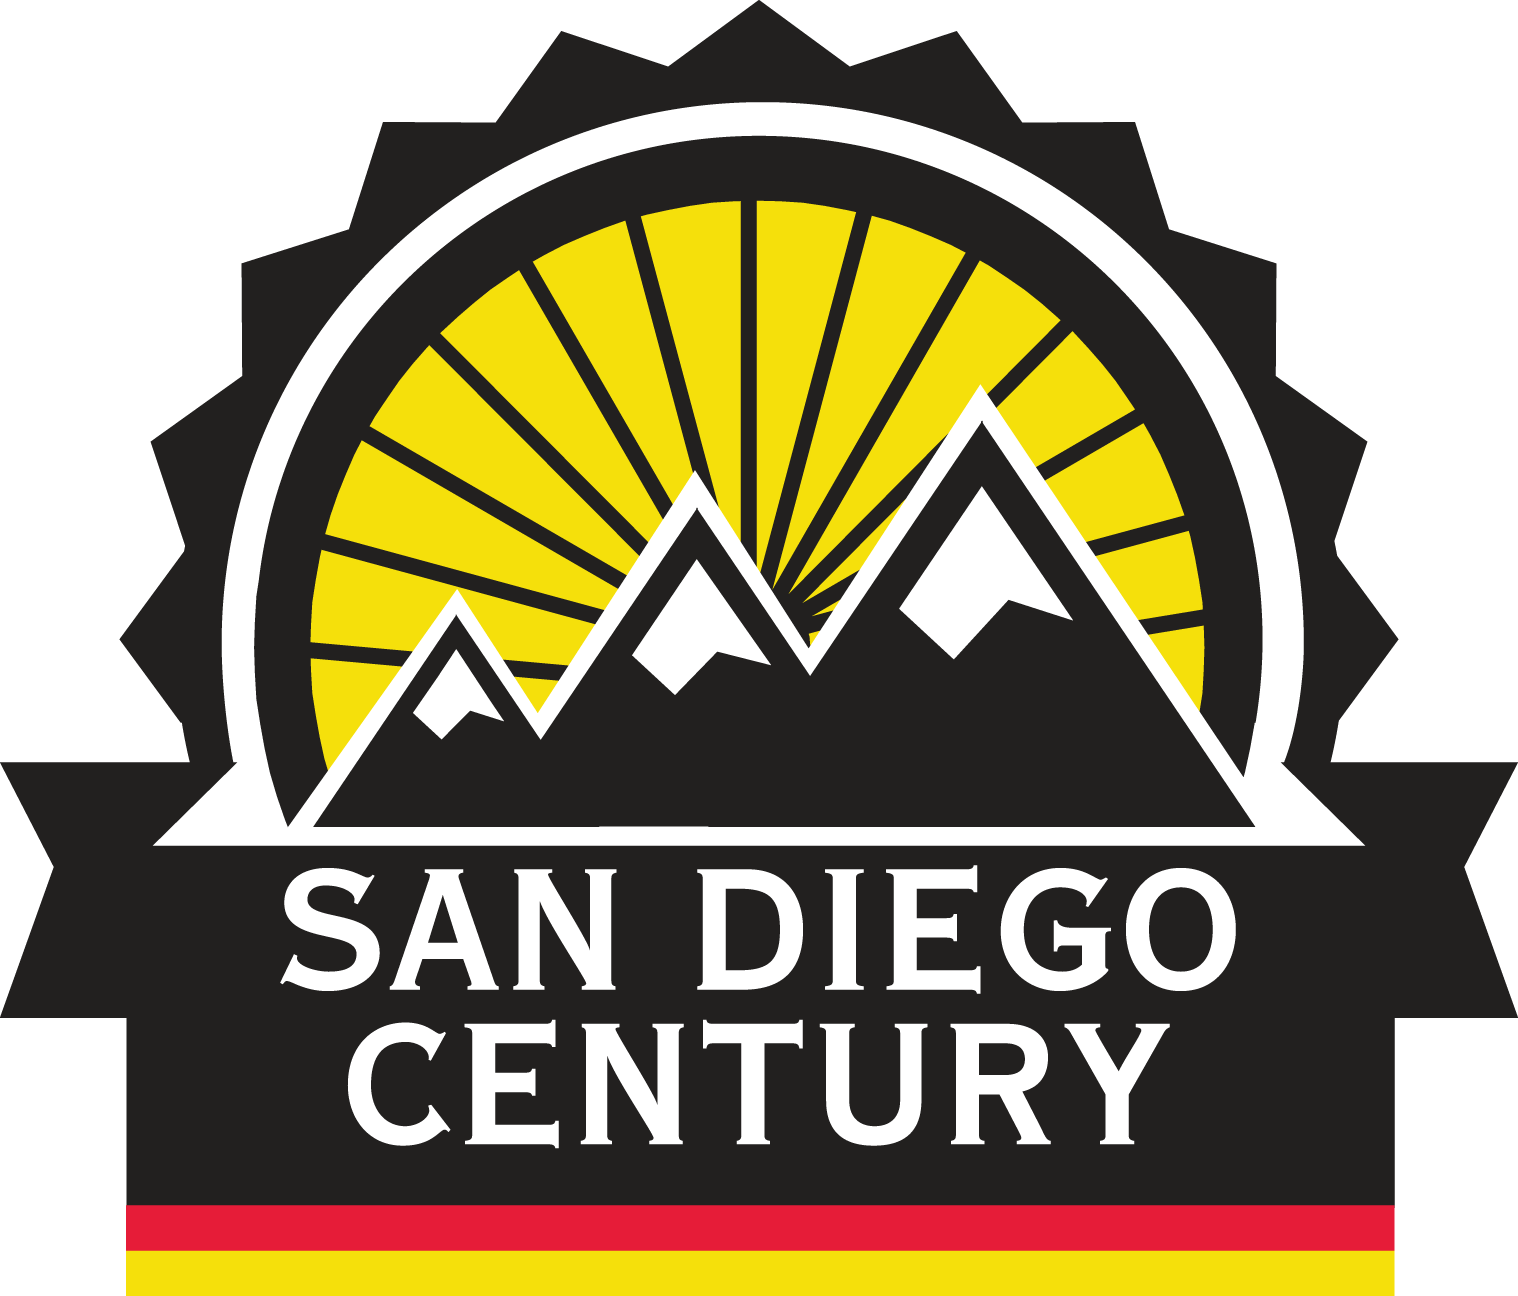 Boys & Girls Club of San Dieguito Partners with San Diego Century Bicycle Tour